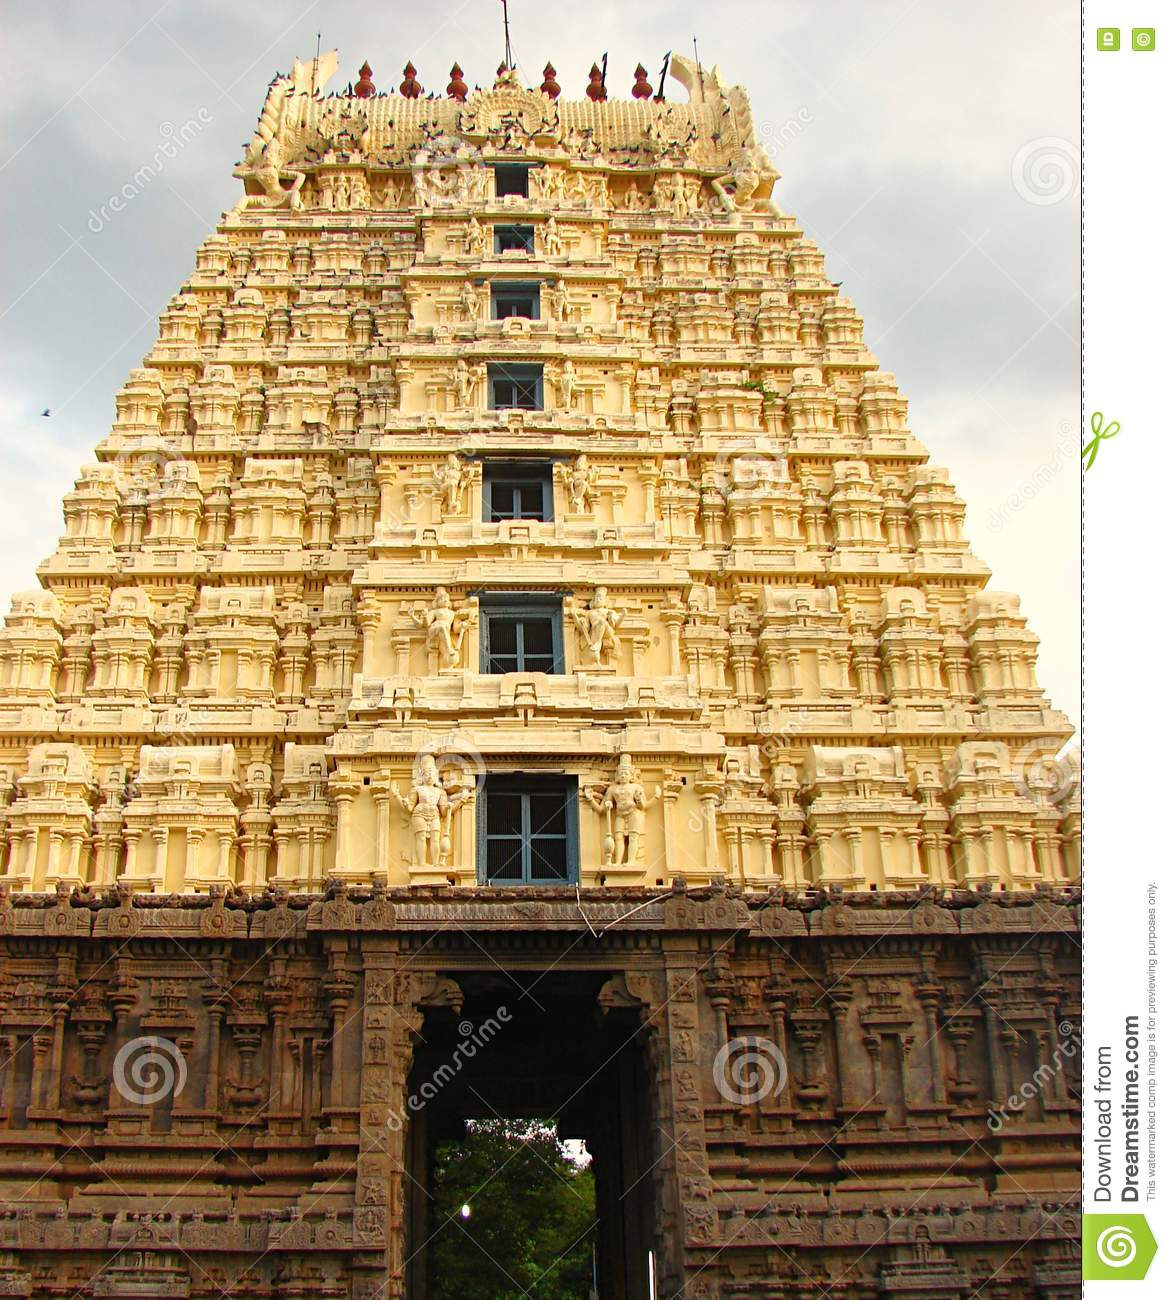 Gopura Gopuram - A Gate In Hindu Temples Of Dravidian Style Stock Photo - Image of decorated. monument: 80302094